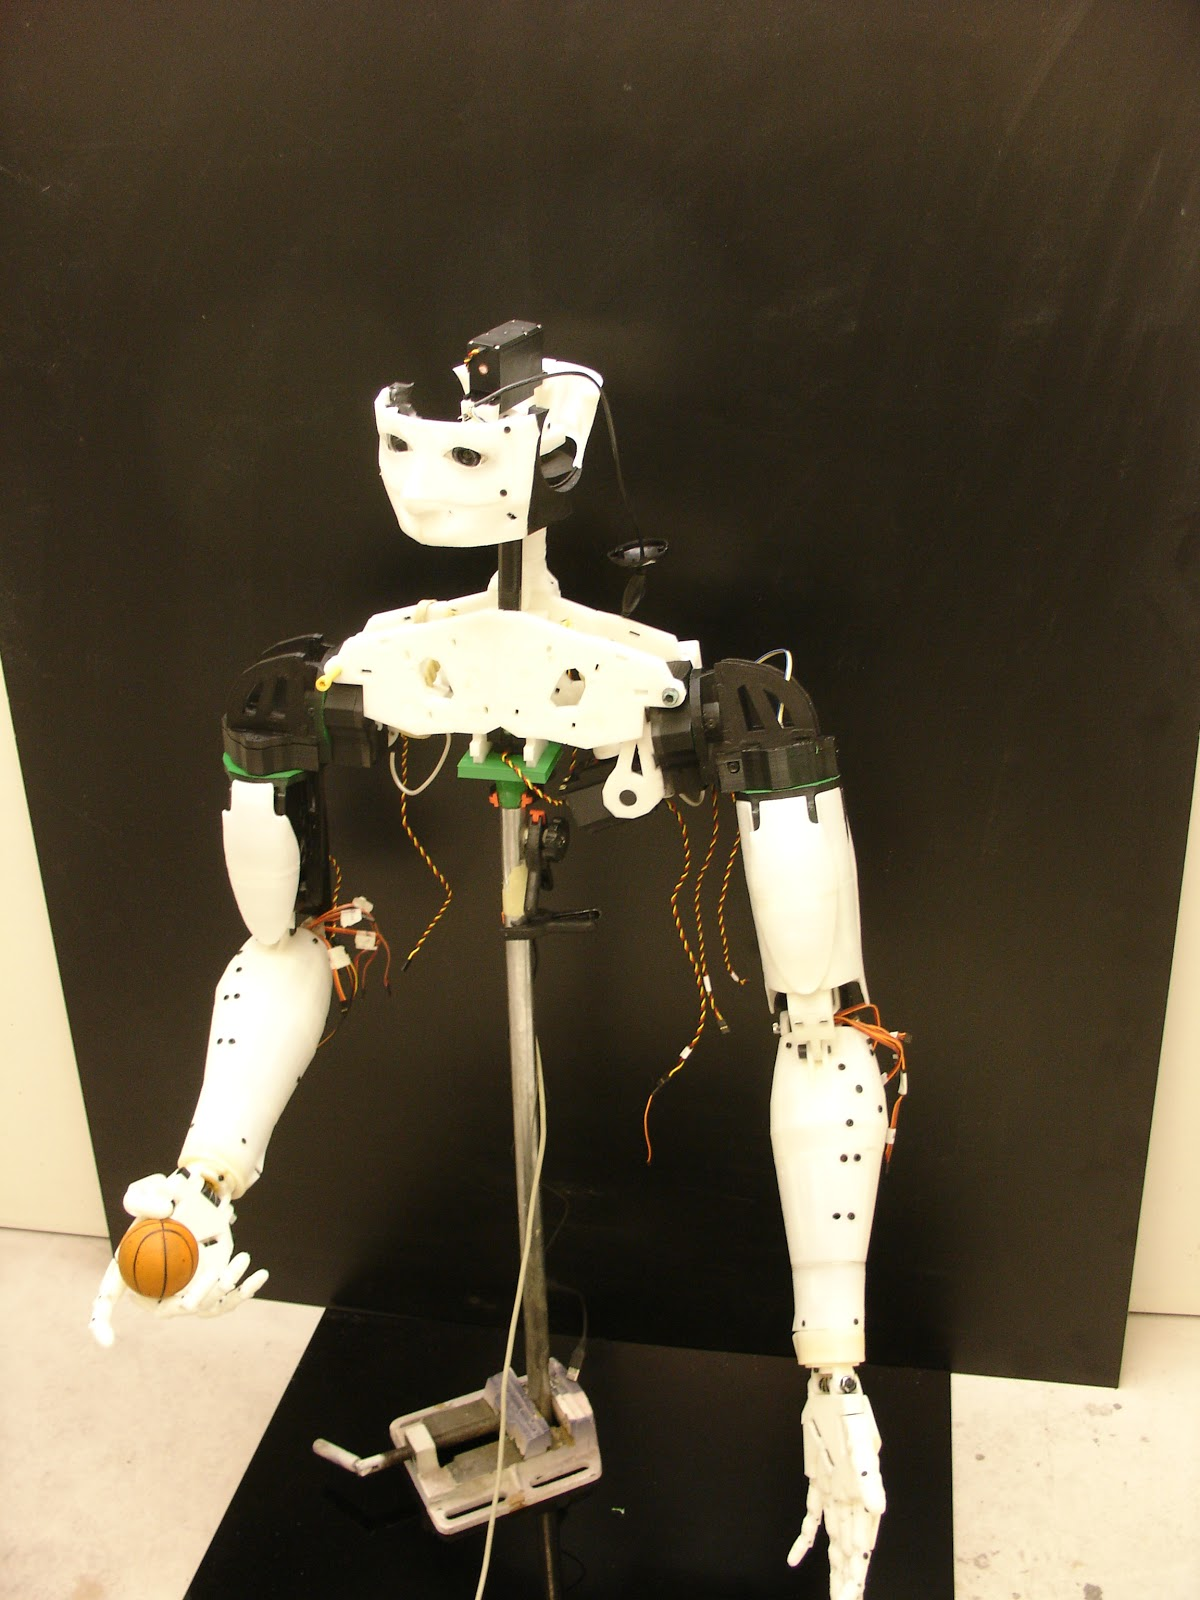 3D Print Yourself a Robot - Digital Engineering 24/7